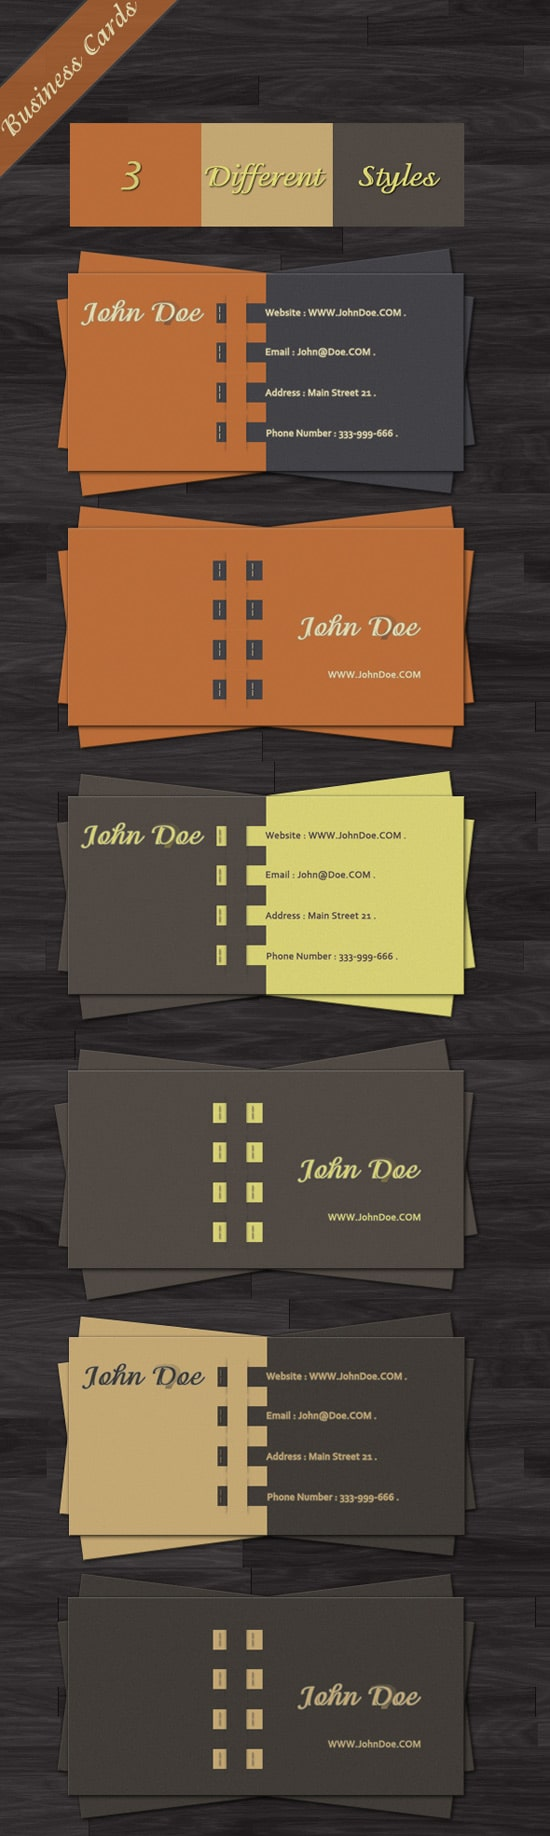 100 free business card templates designrfix business is business free psd vector business card accmission